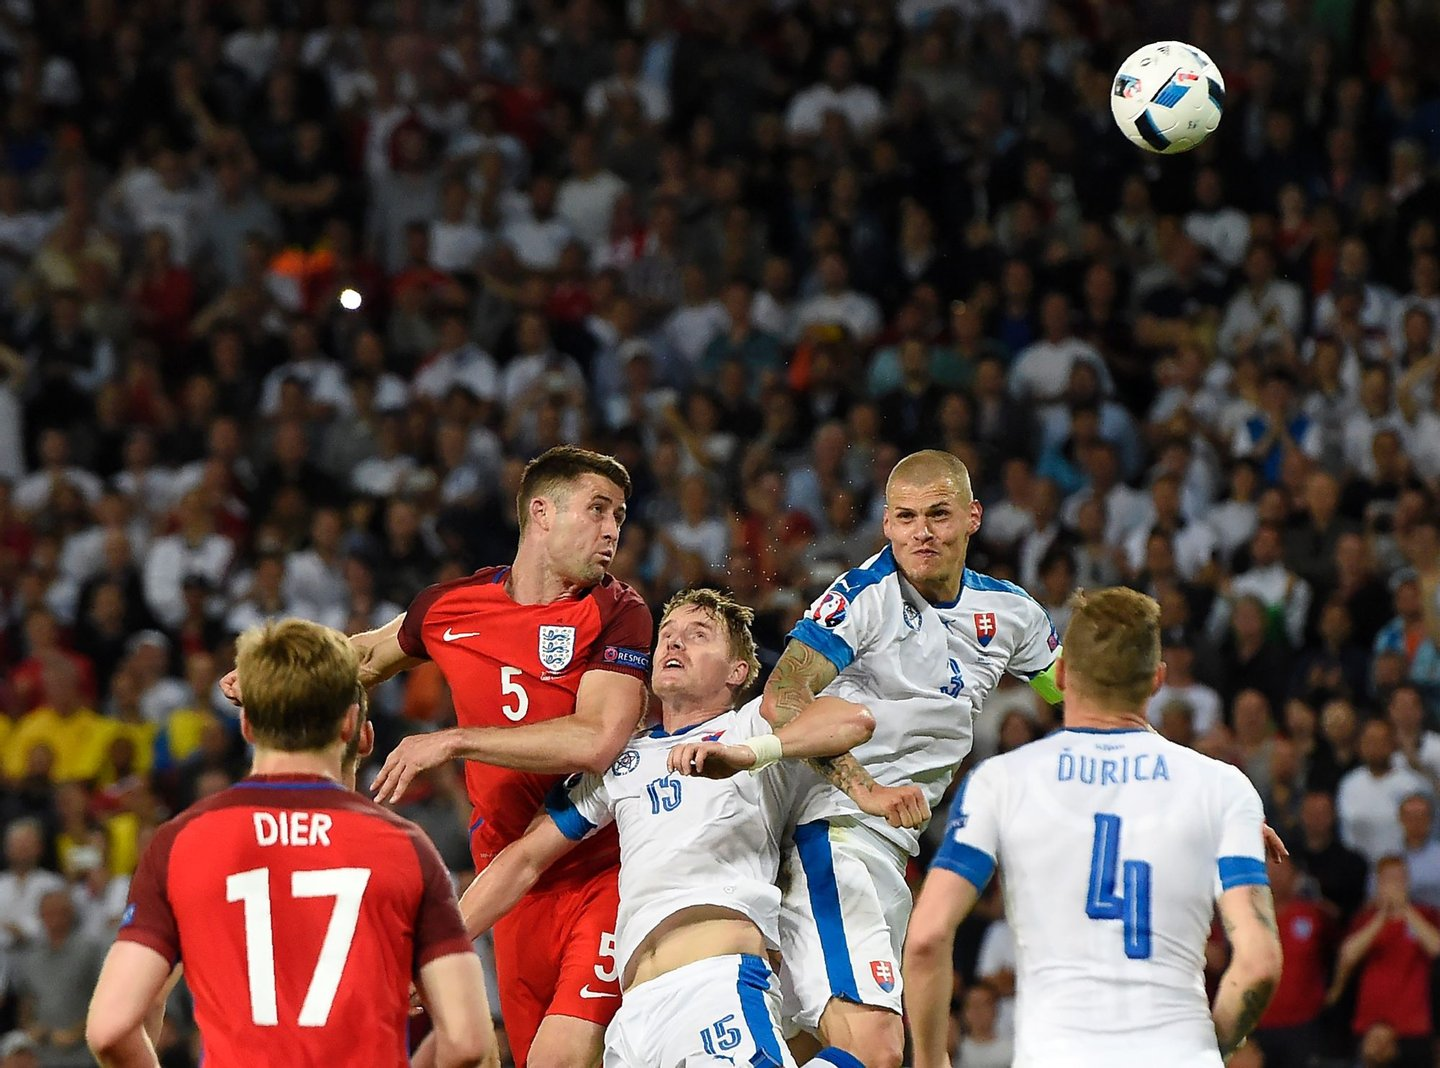 England's defender Gary Cahill (C-L) vies for the header with Slovakia's defender Tomas Hubocan (C) and Slovakia's defender Martin Skrtel (C-R) during the Euro 2016 group B football match between Slovakia and England at the Geoffroy-Guichard stadium in Saint-Etienne on June 20, 2016. / AFP / Joe KLAMAR (Photo credit should read JOE KLAMAR/AFP/Getty Images)